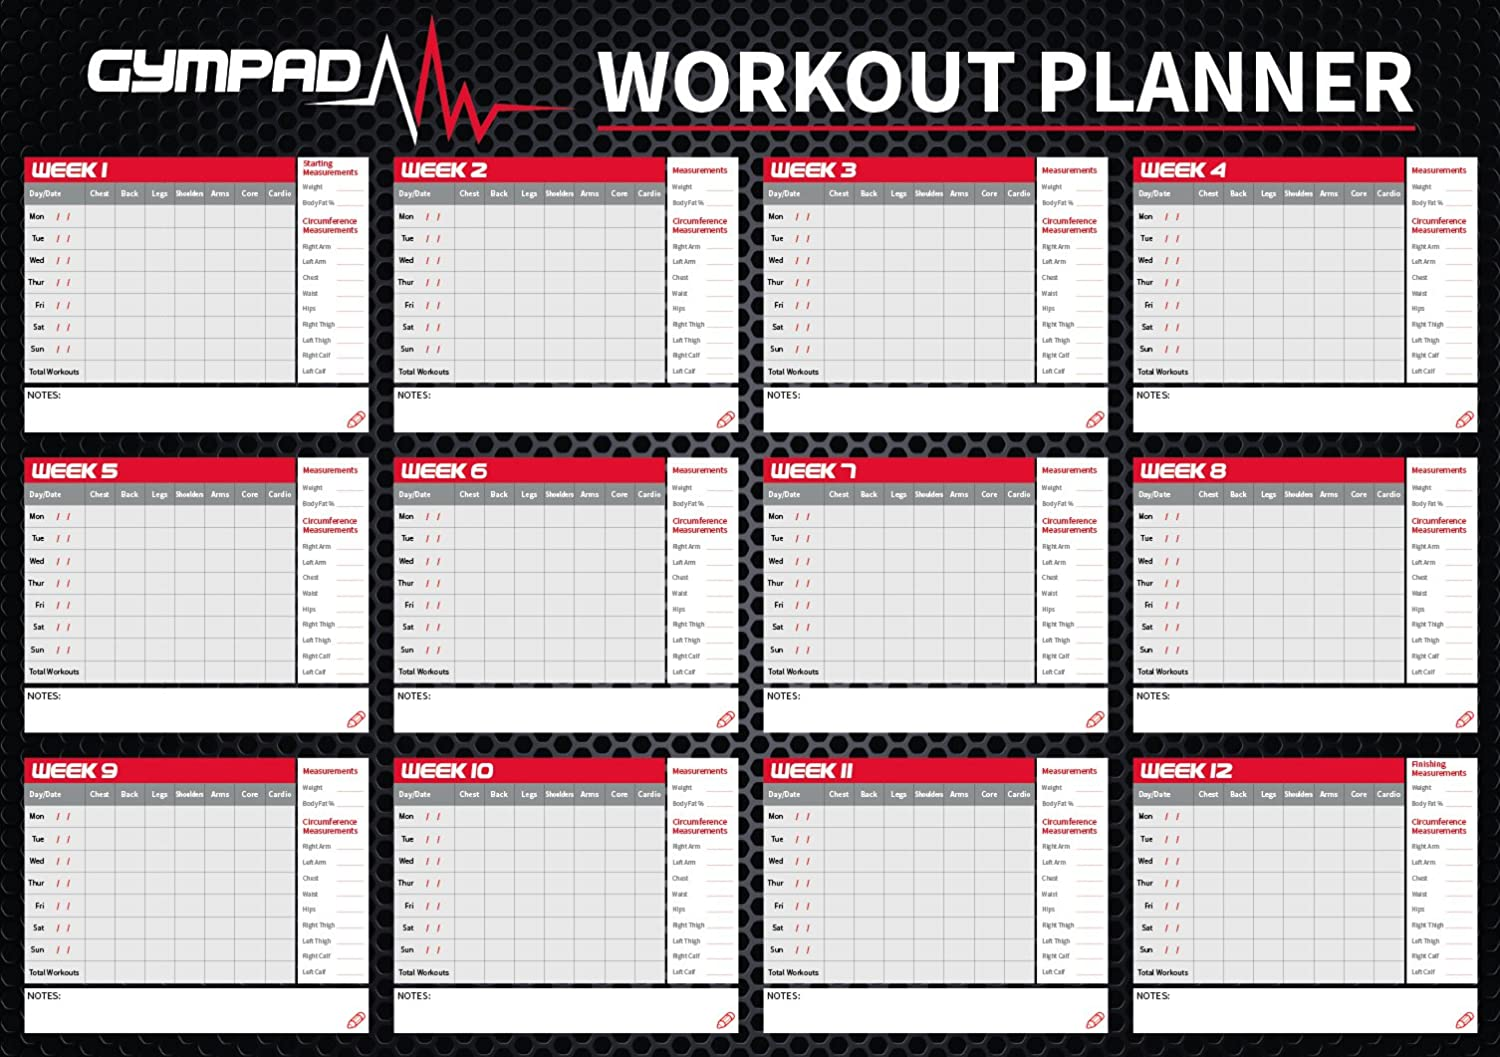 GymPad 12 Week Fitness Workout Planner - Premium Quality 16in x 23in Wall Chart Poster